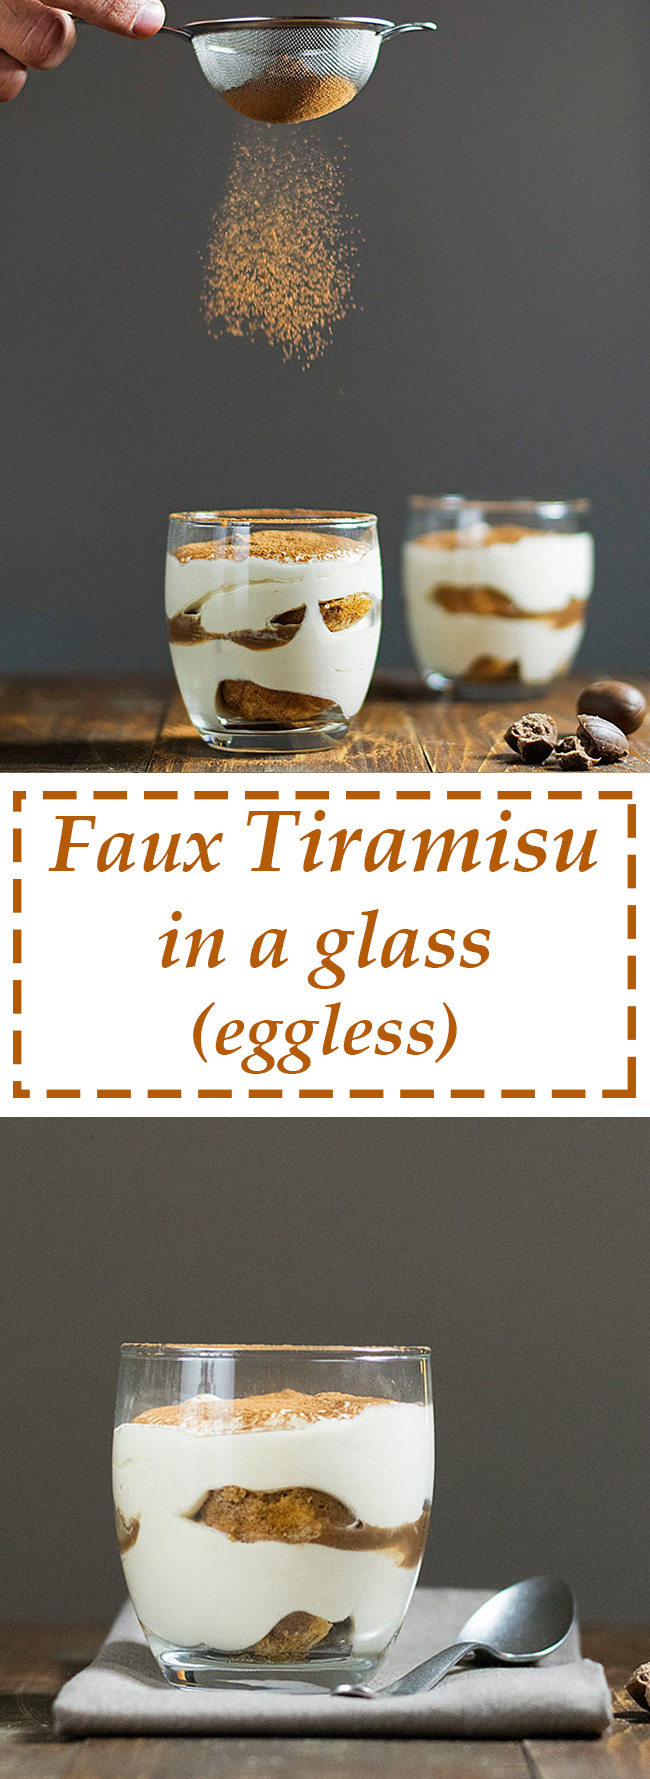 Faux tiramisu in a glass (eggless) 5